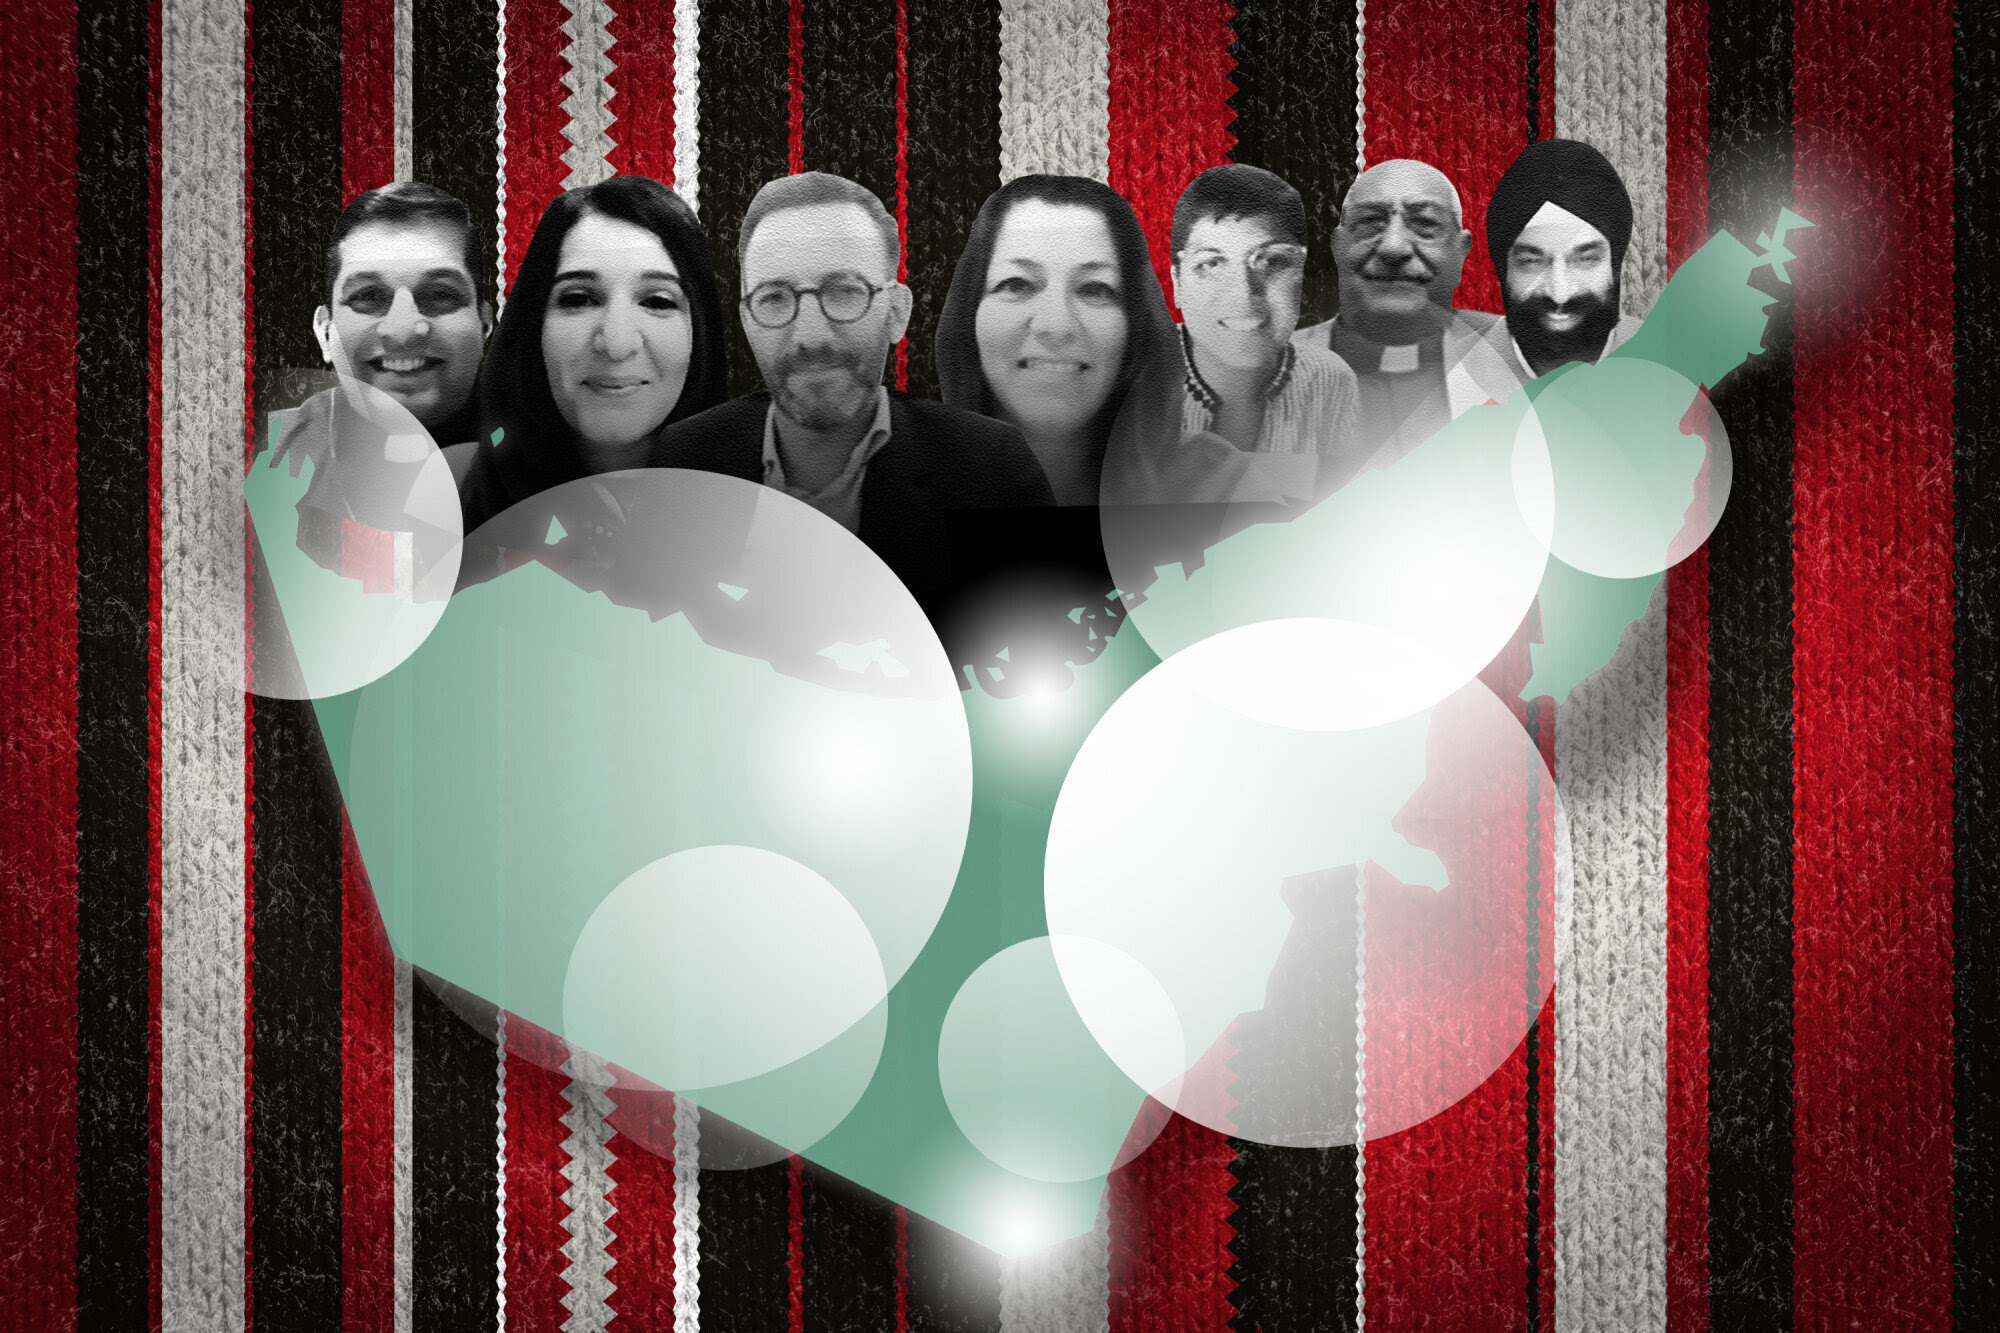 Illustration showing portraits of Emiratis of various faiths and map of the United Arab Emirates with bright circles around several locations, overlaid on background image of Emirati fabric.